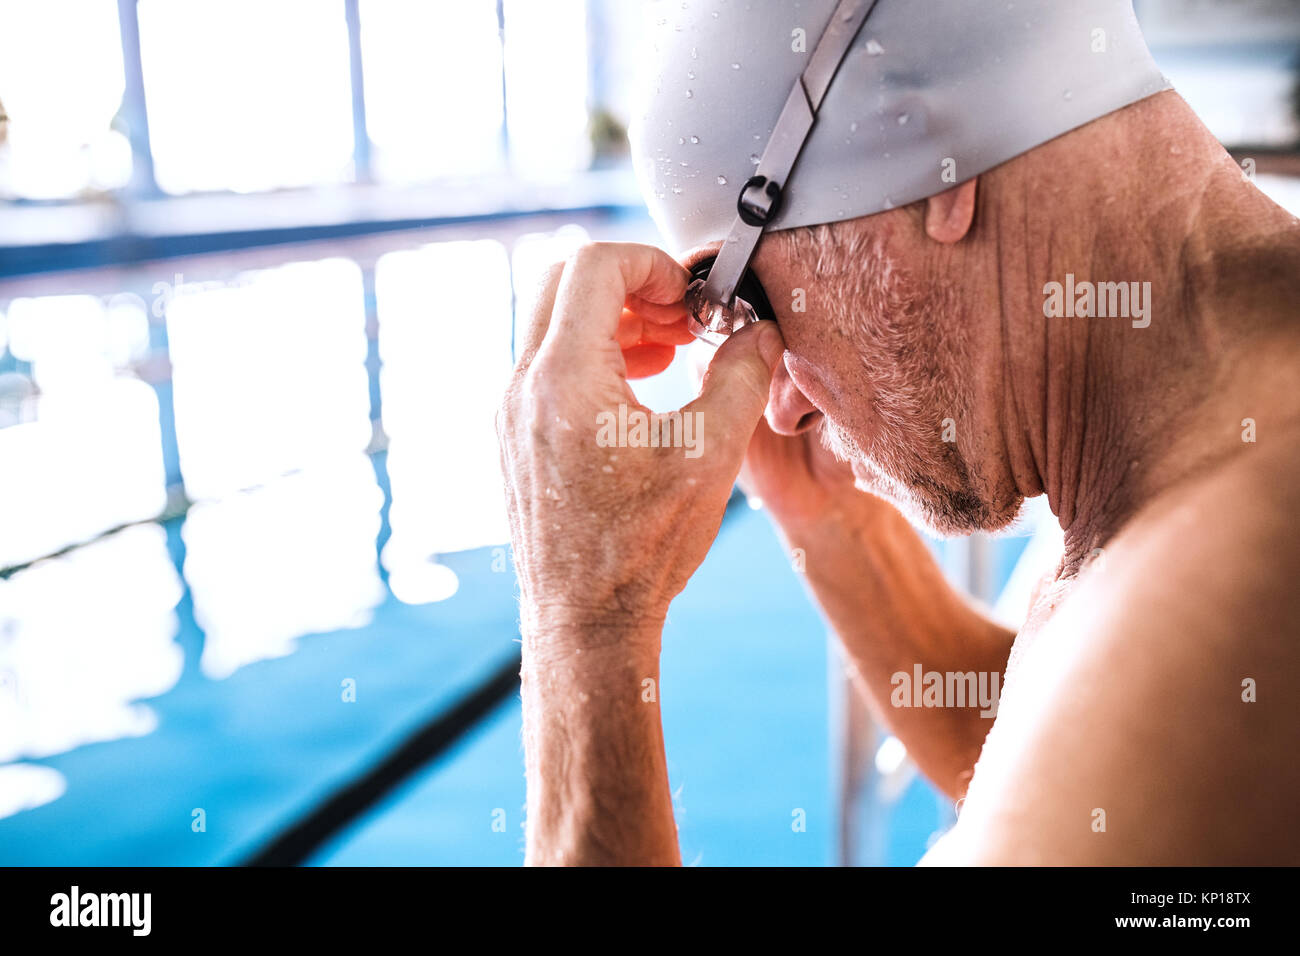 Senior man in an indoor swimming pool. - Stock Image